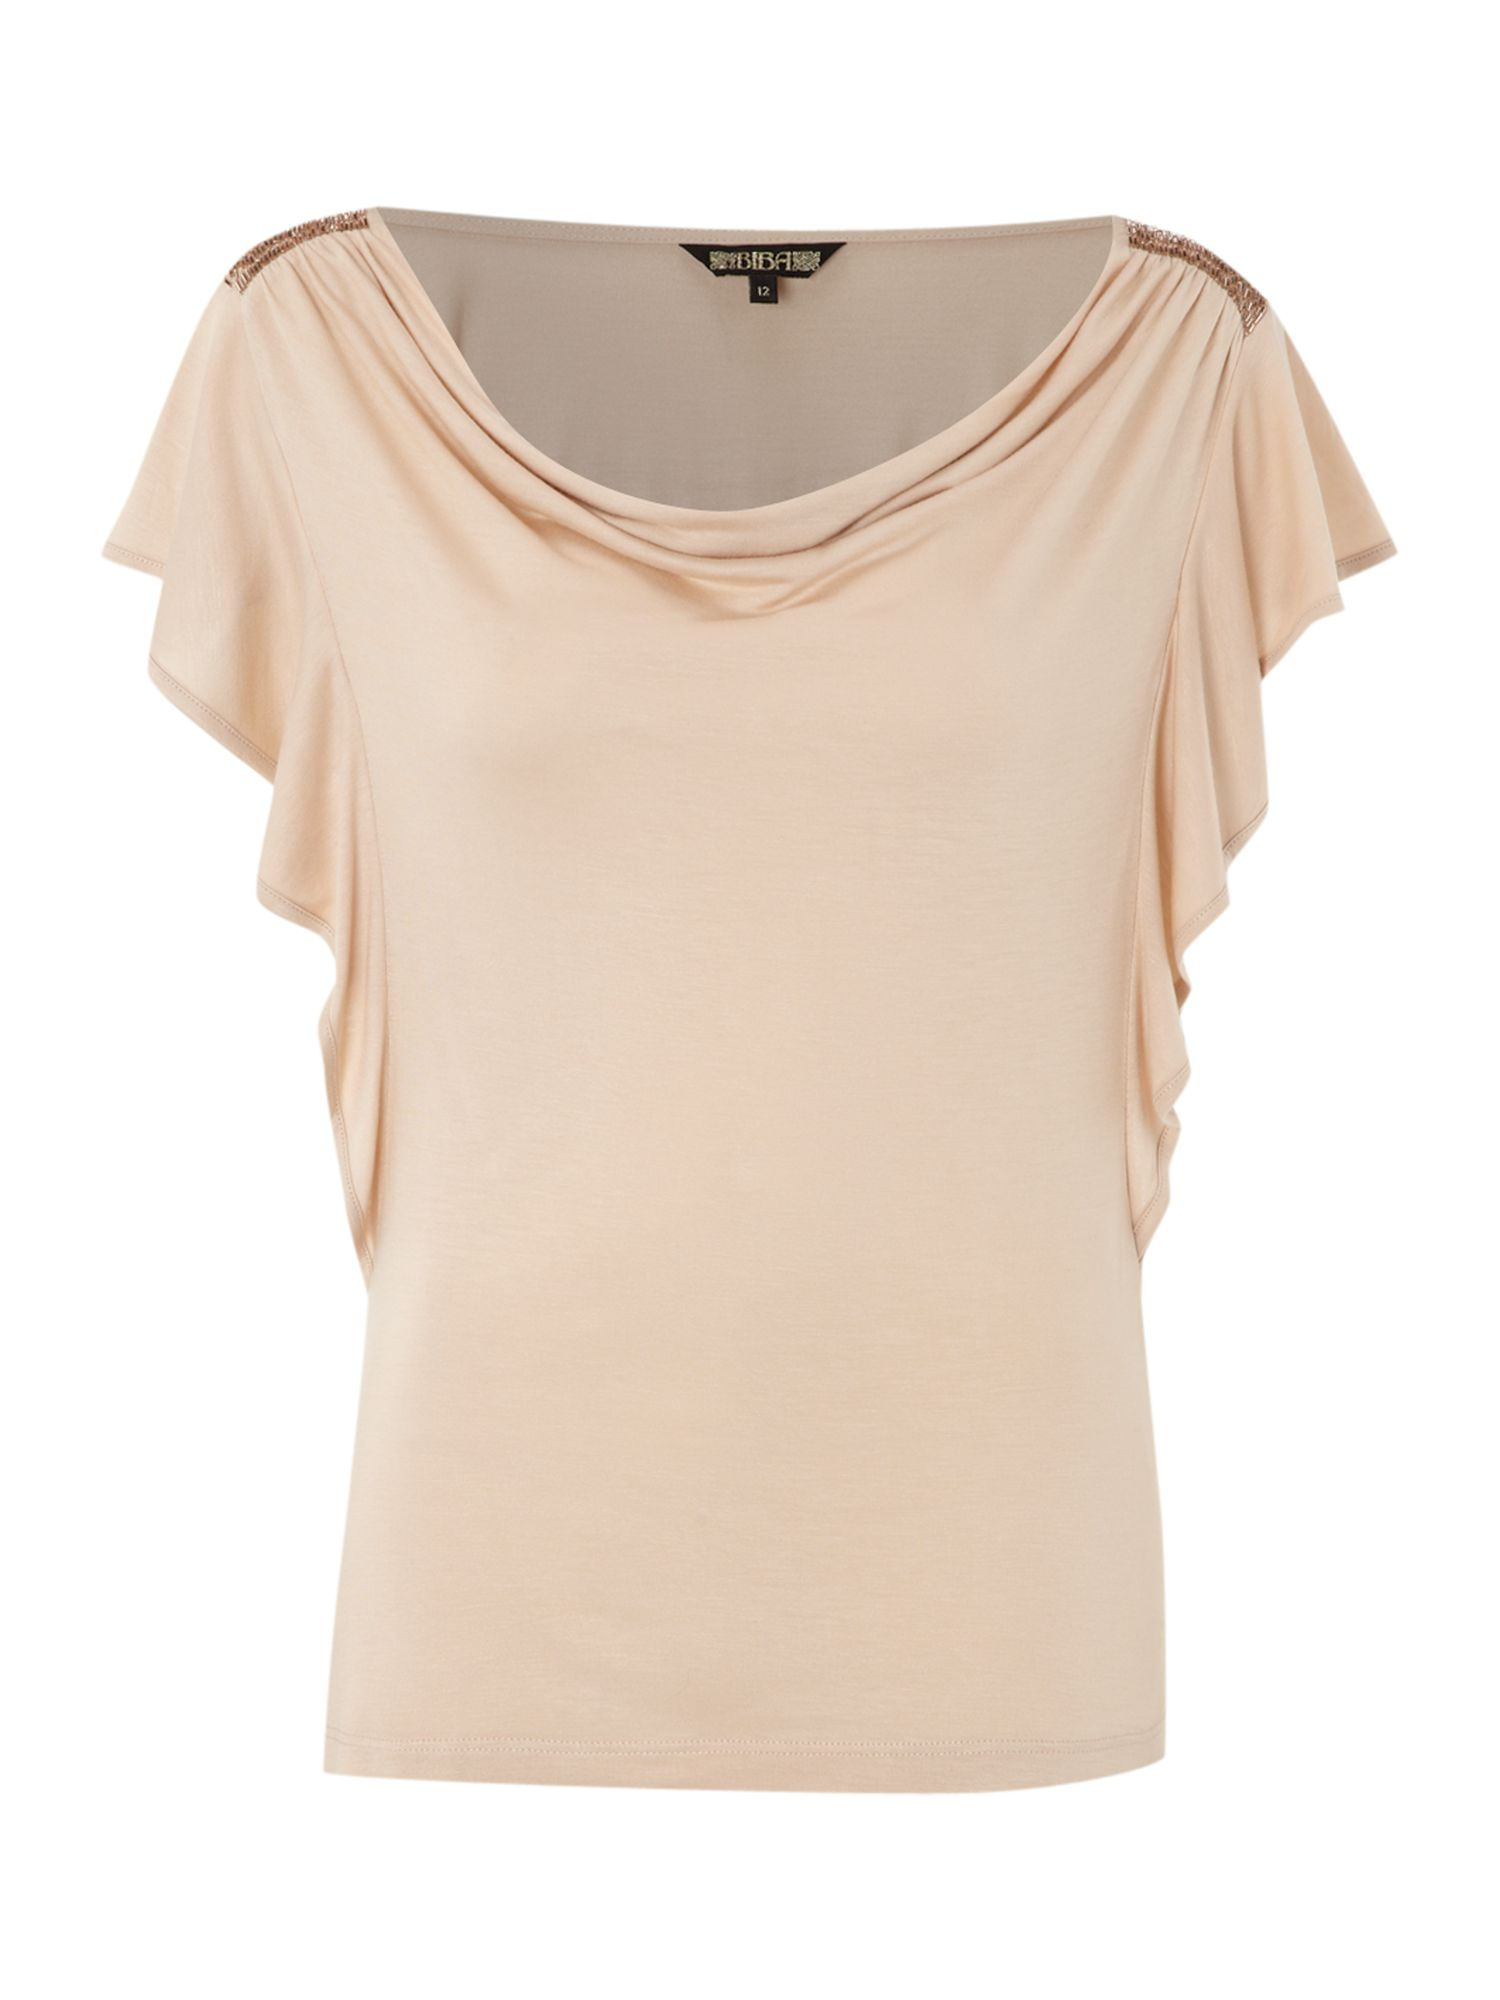 Biba Womens Biba Cowl front beaded t-shirt, Nude product image